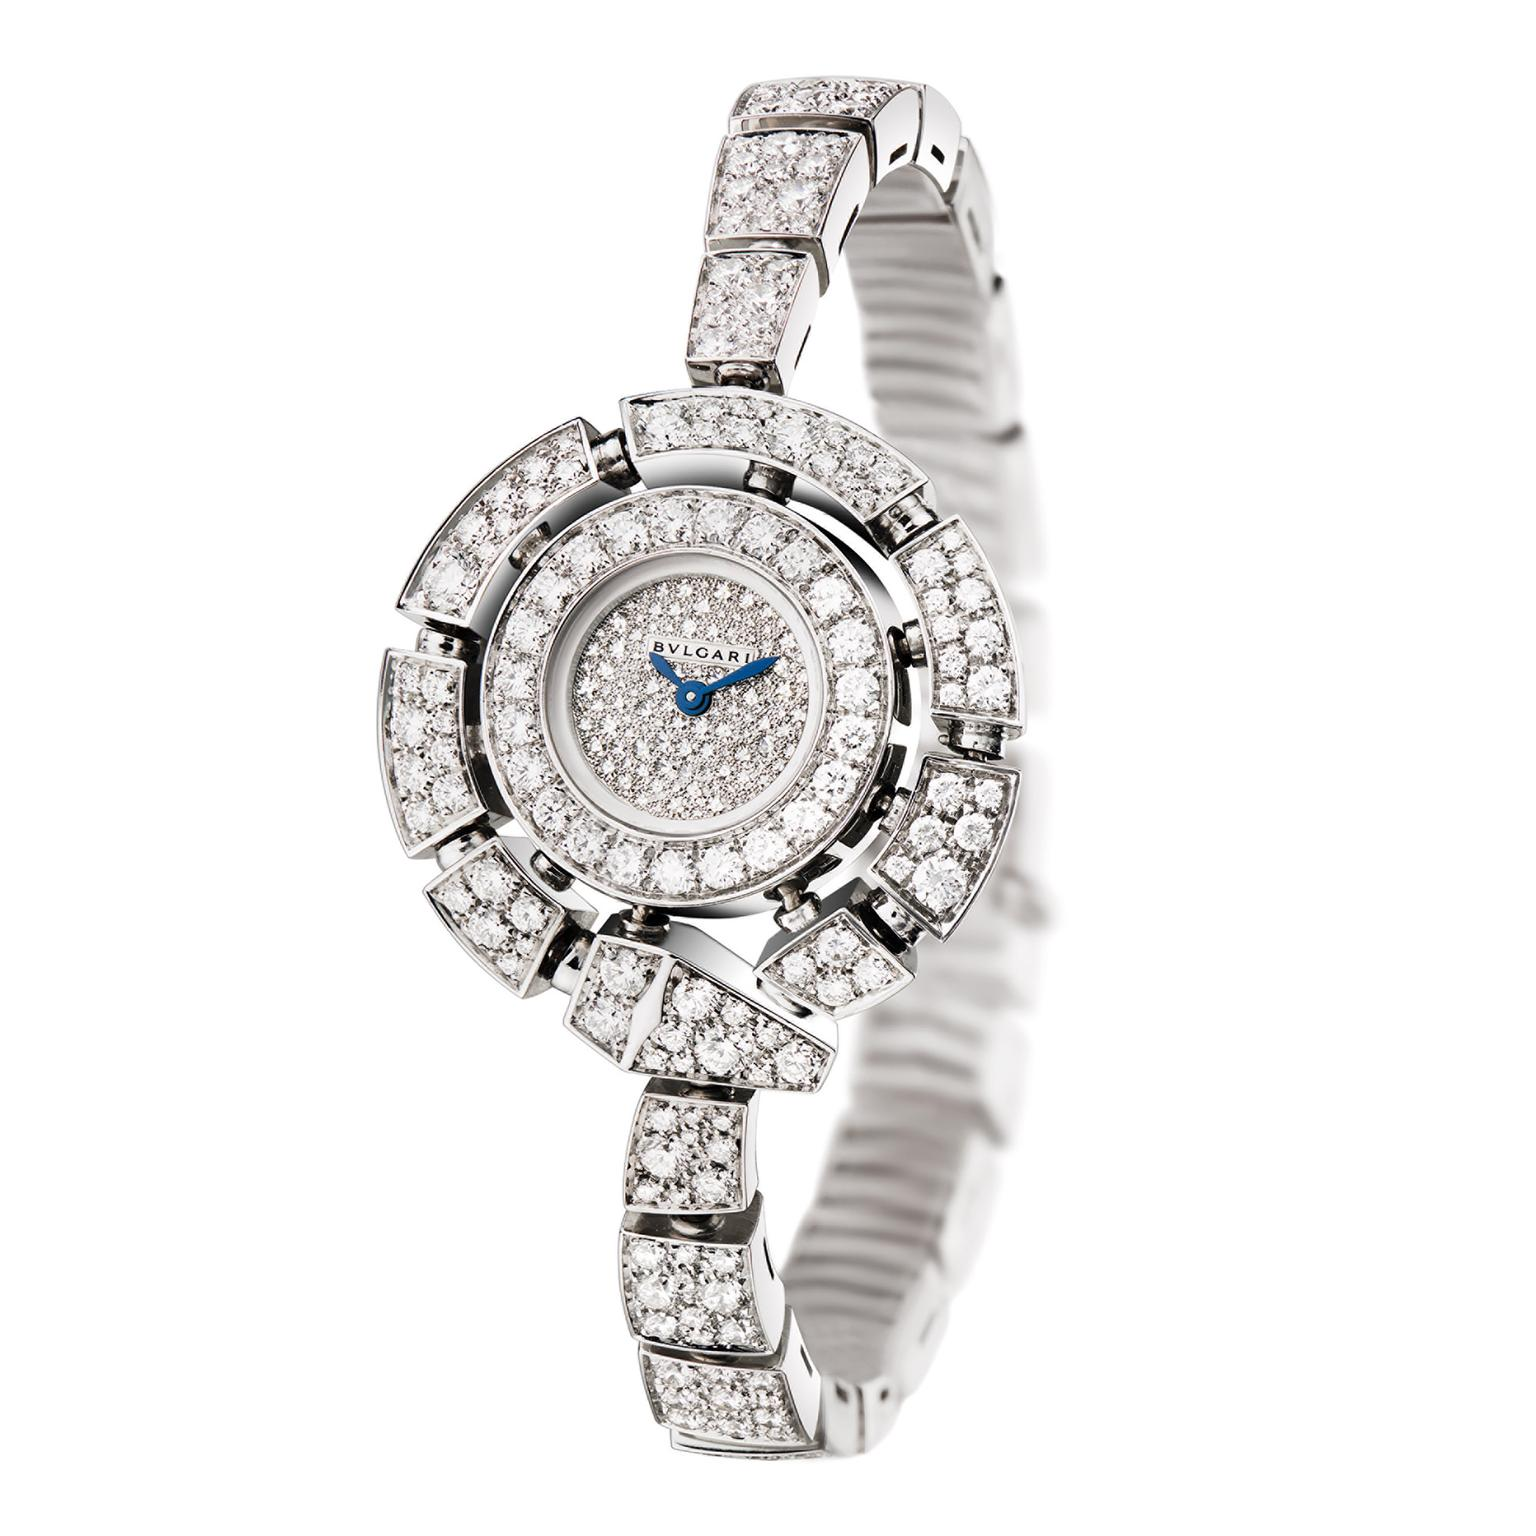 Diamond Watch Return Of Bulgari 39s Serpenti Snake Watches For Women The